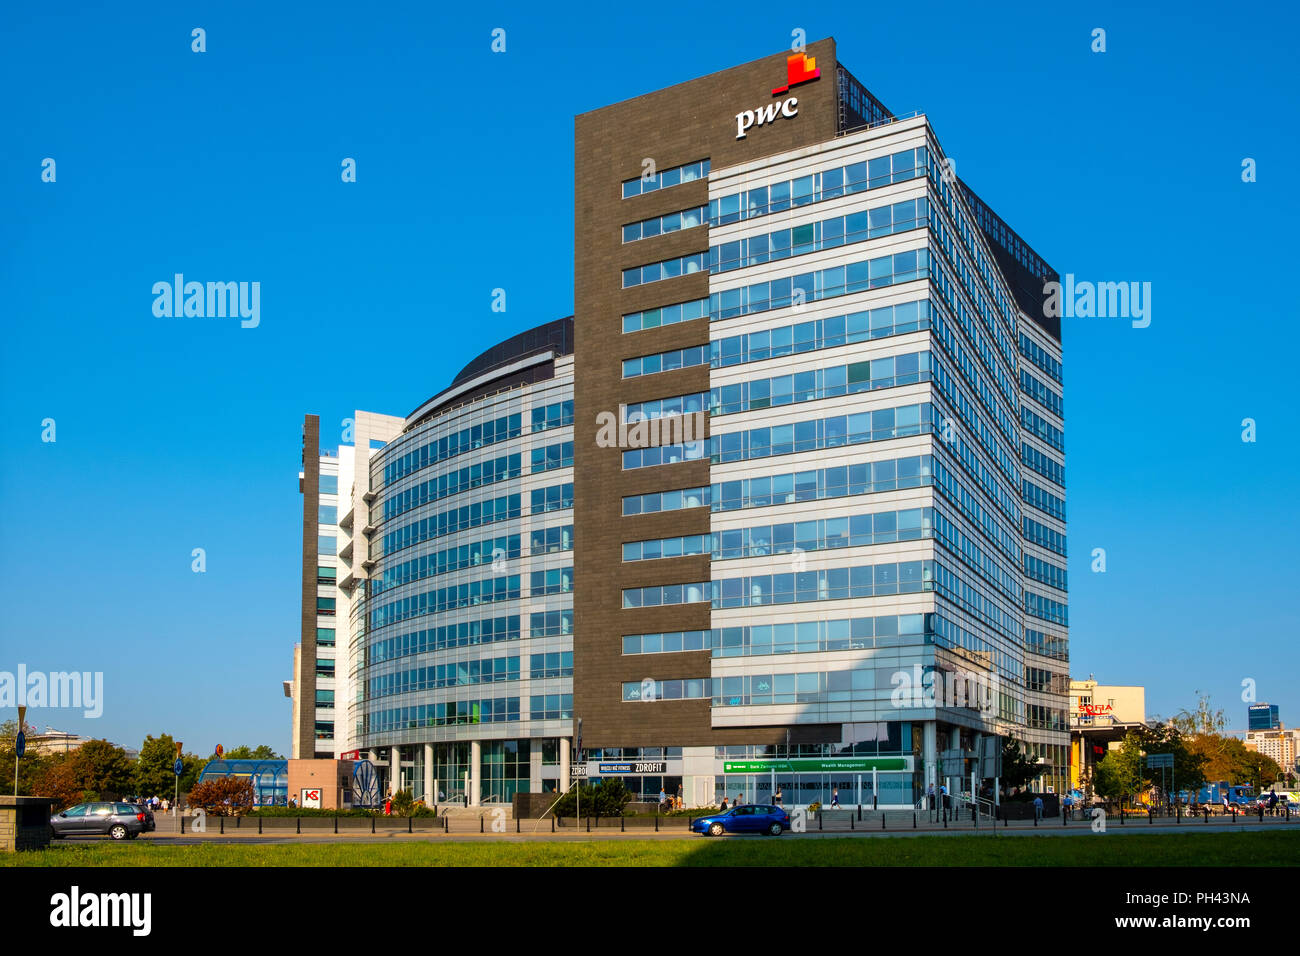 Warsaw, Mazovia / Poland - 2018/08/30: International Business Center building - polish headquarter of the PricewaterhouseCoopers PwC consulting firm - Stock Image